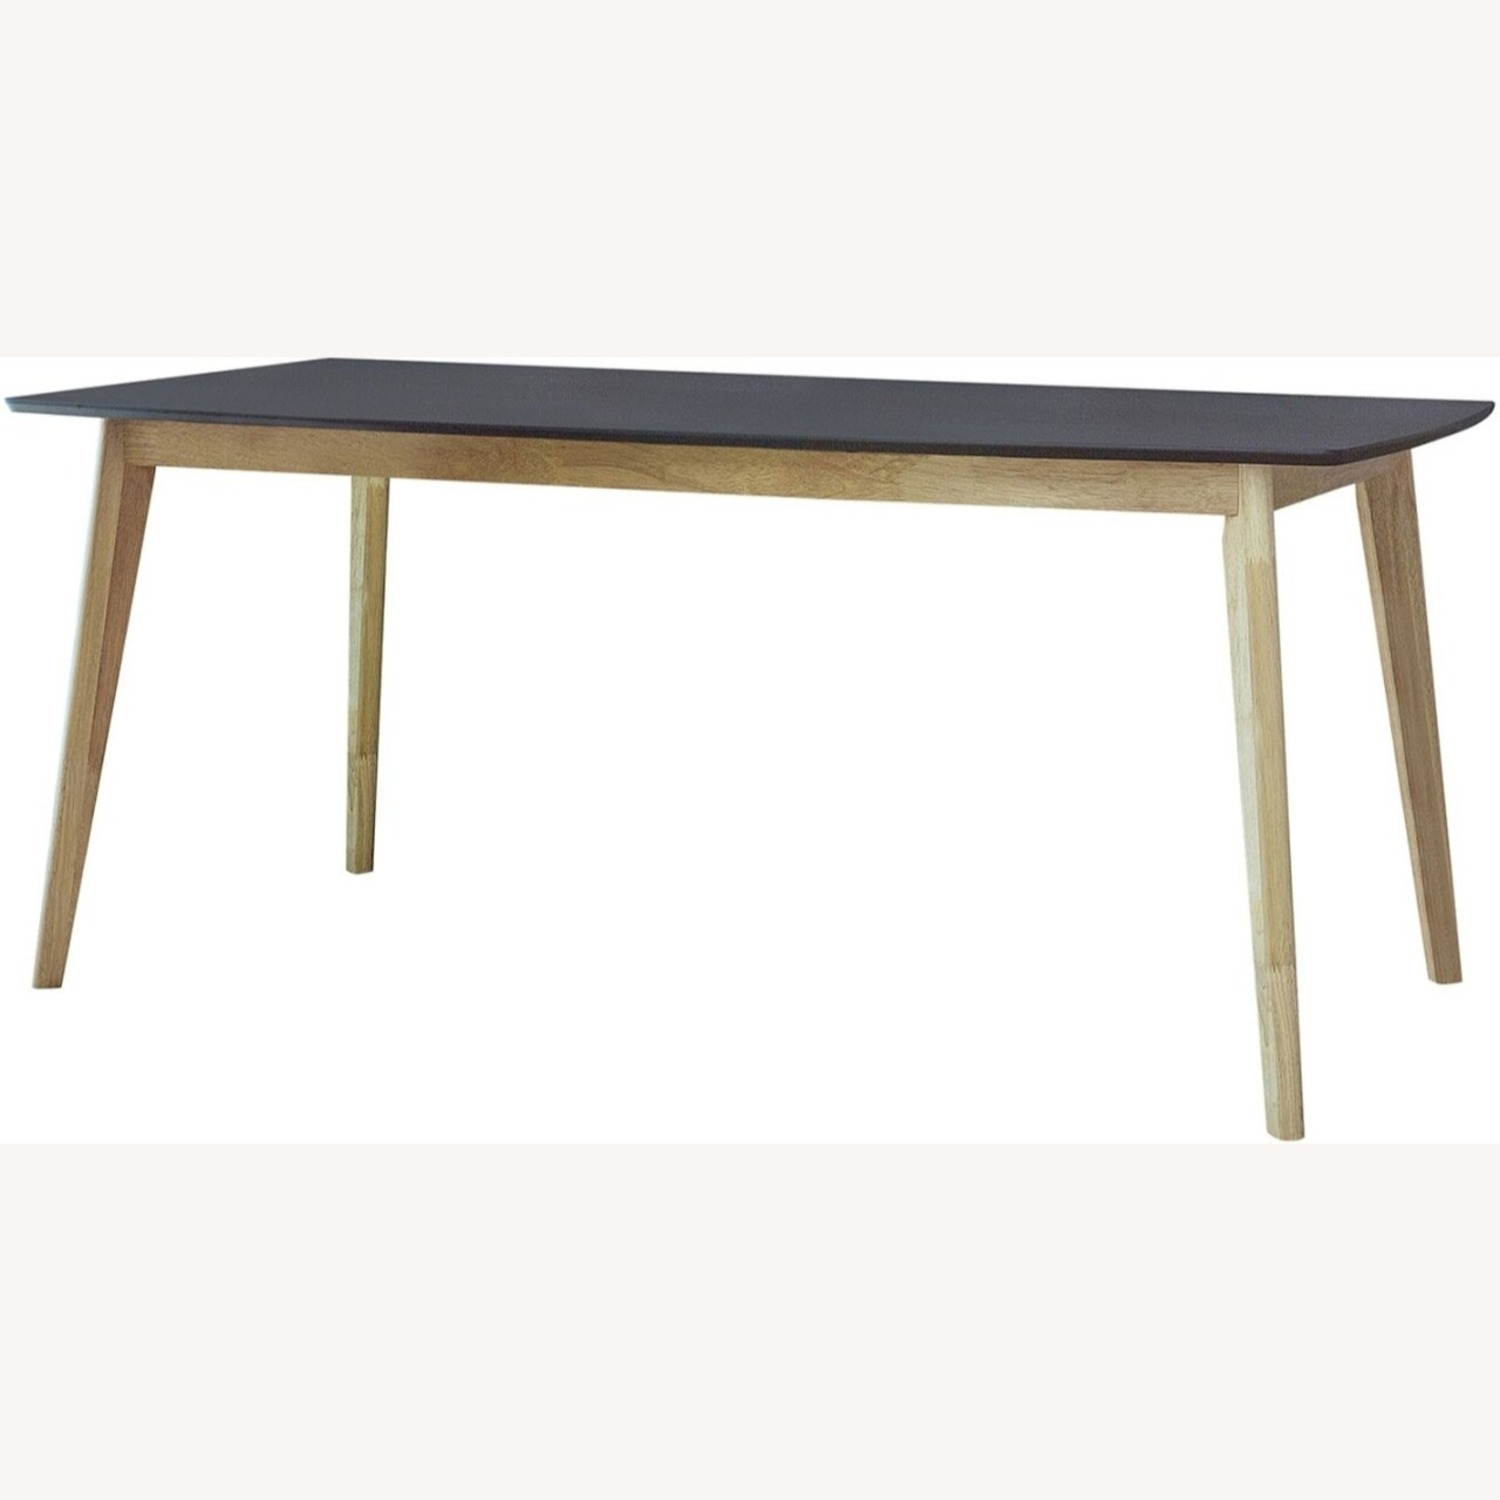 Dining Table In Matte Black And Natural Finish - image-0